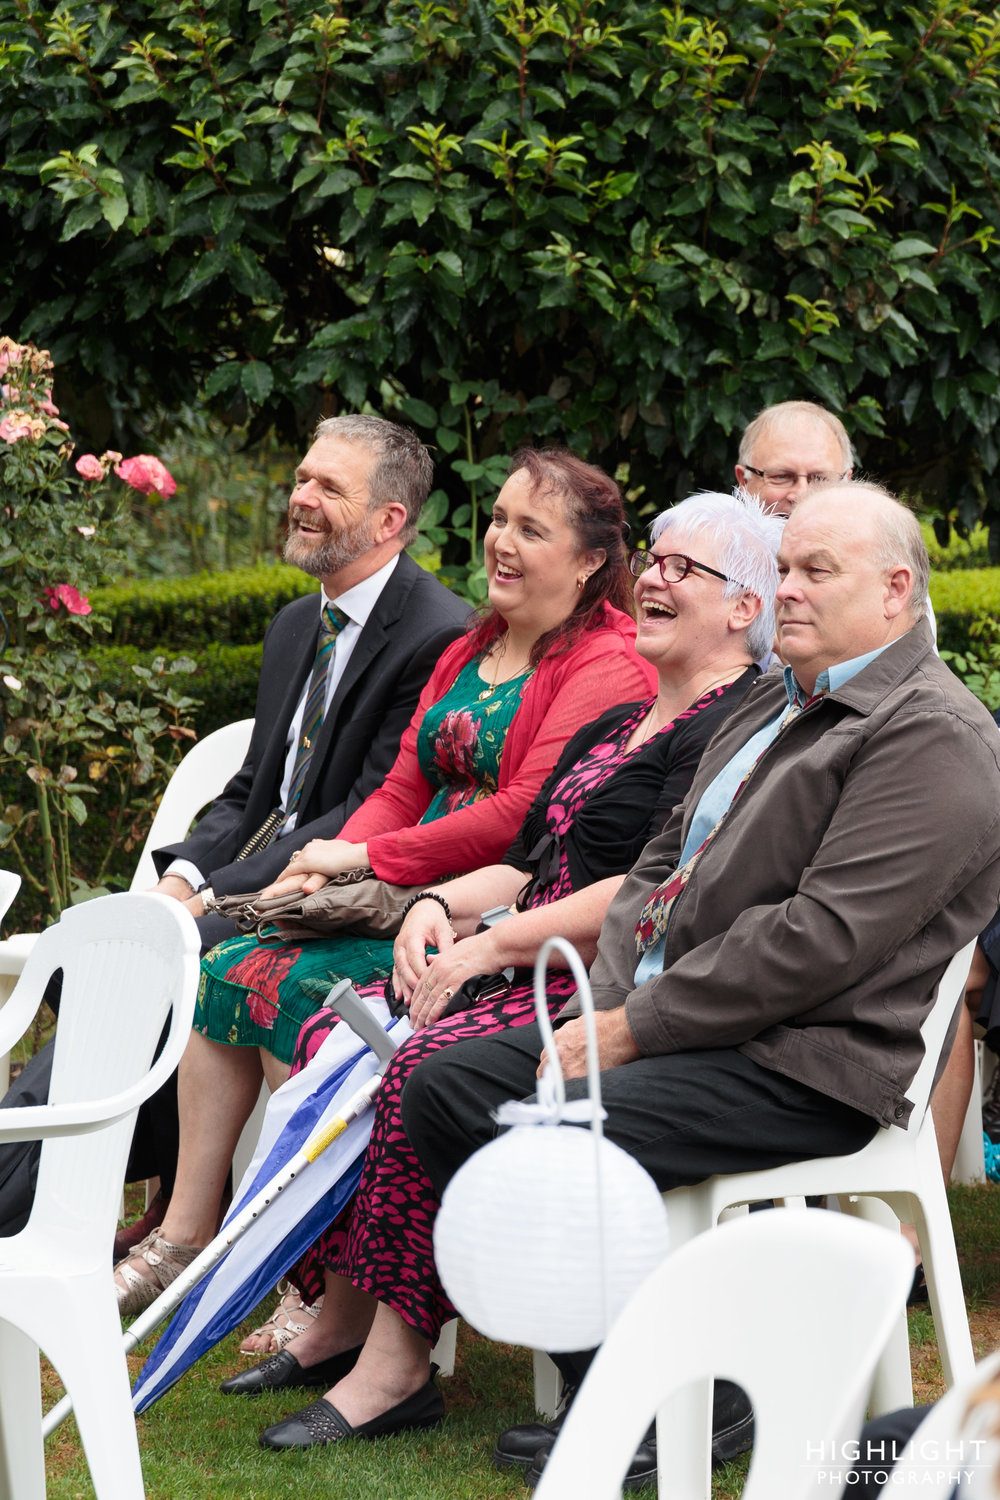 highlight-wedding-photography-new-zealand-palmerston-north-51.jpg